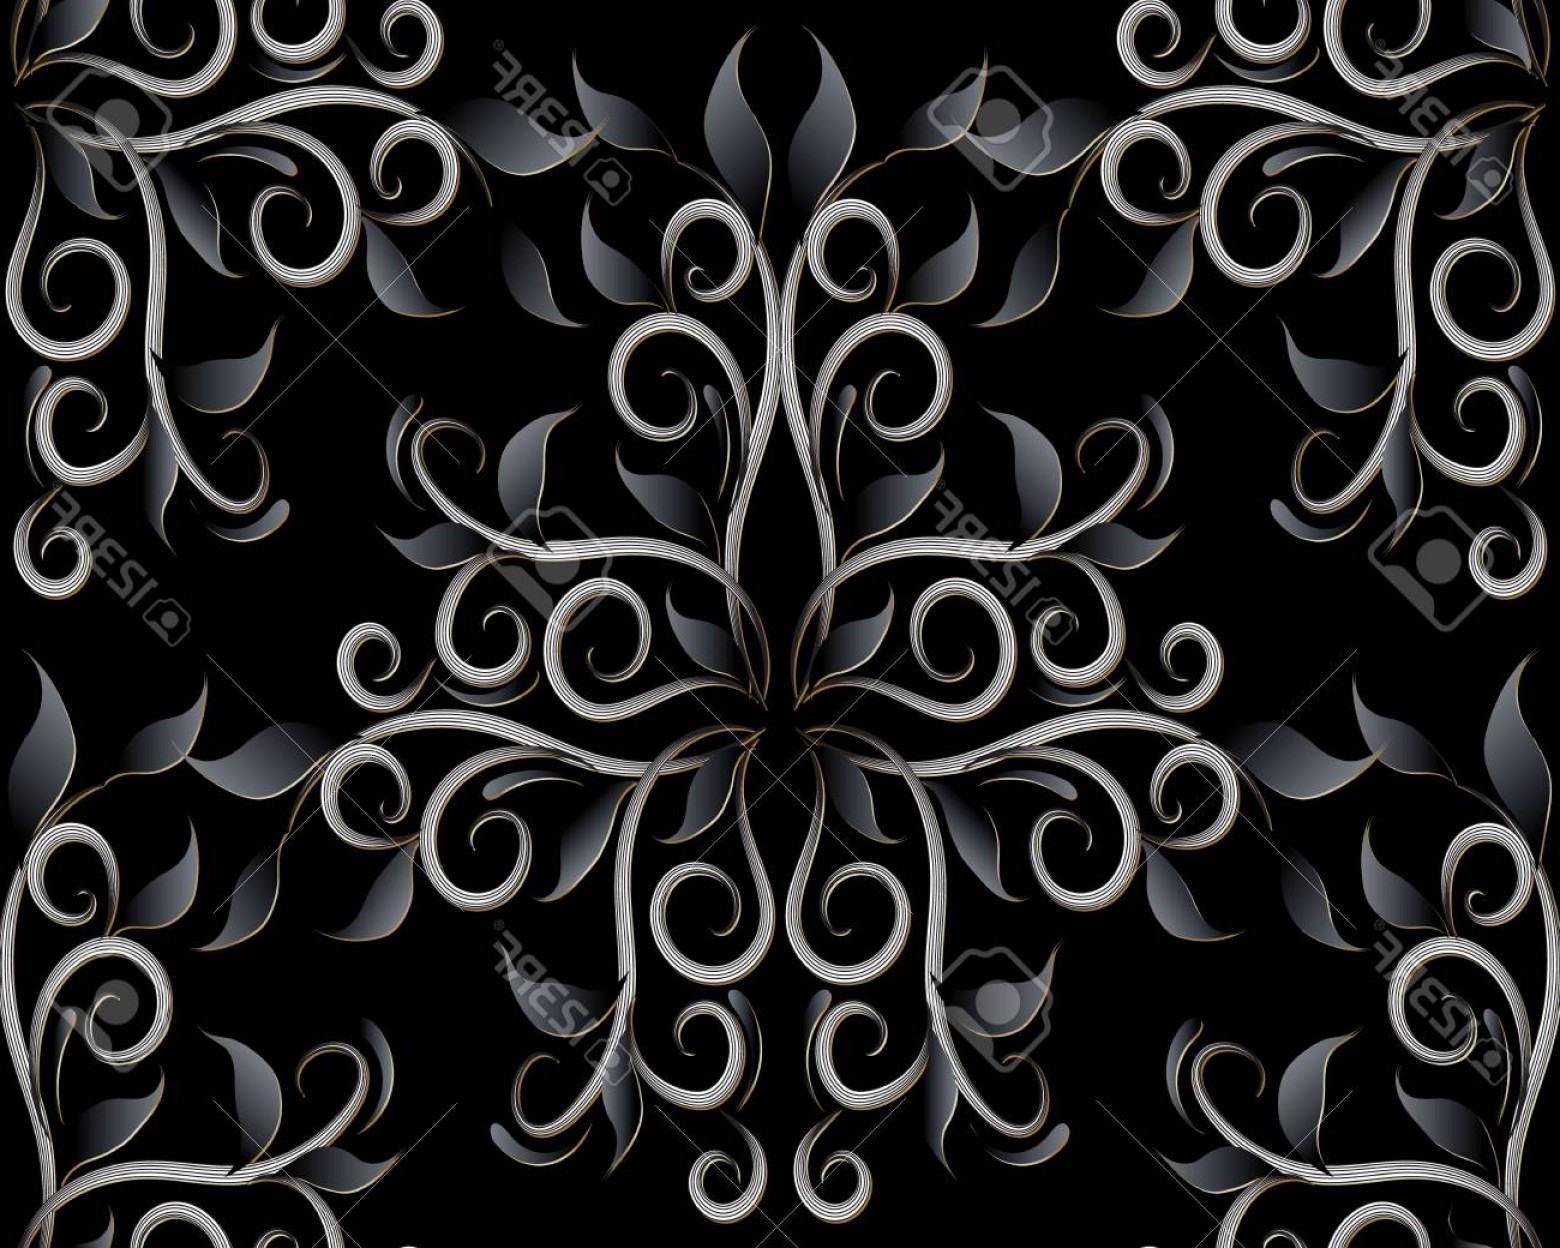 Vector Flourish Backgrounds: Photostock Vector Dark Black Floral D Seamless Pattern Vector Flourish Background Vintage Hand Drawn Black Flowers Le